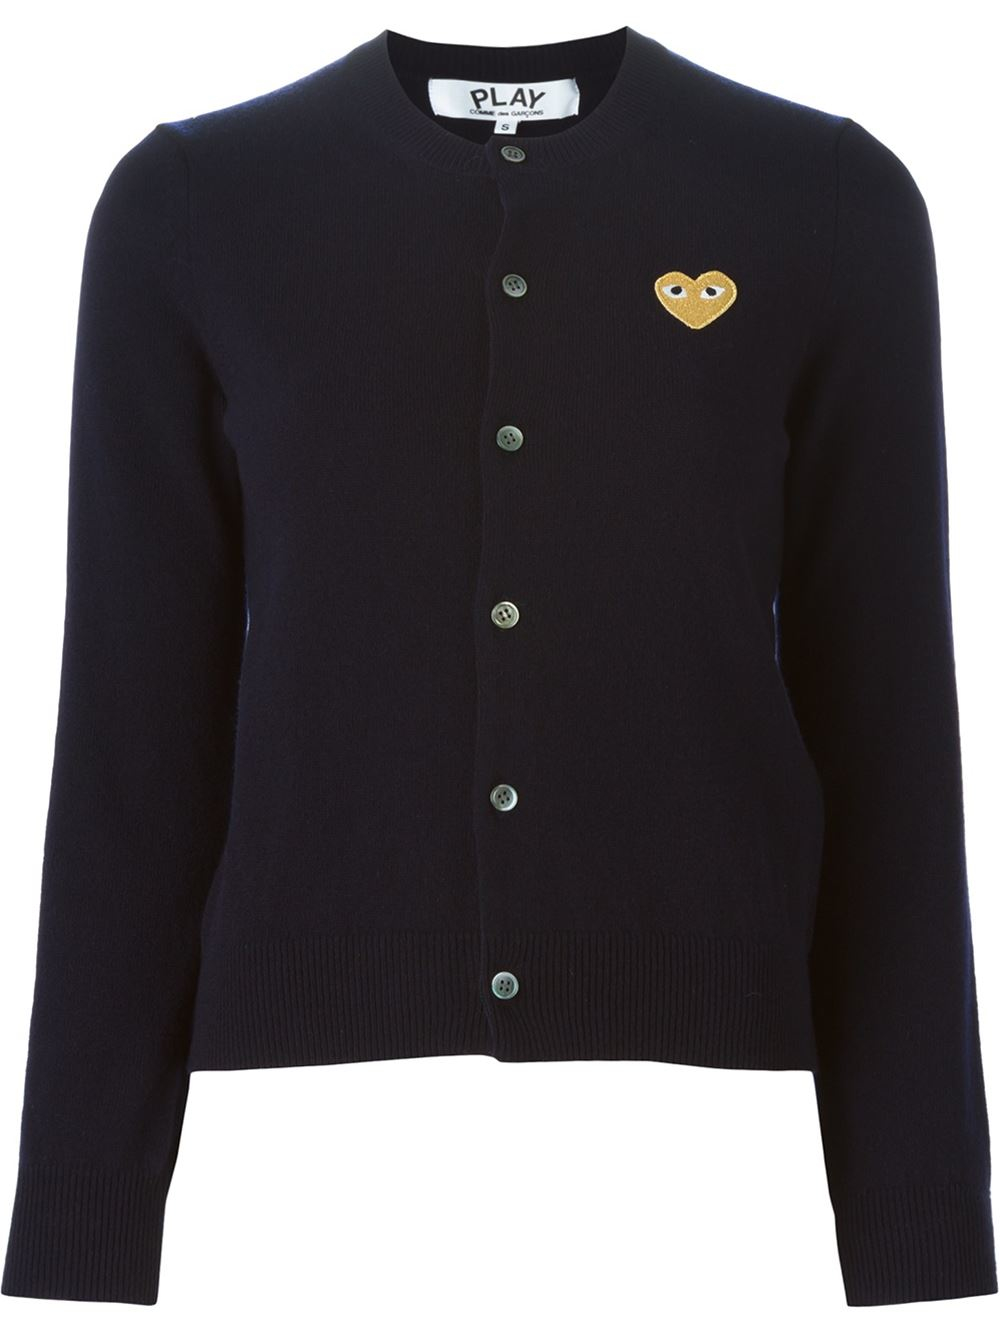 play comme des gar ons embroidered heart cardigan in blue lyst. Black Bedroom Furniture Sets. Home Design Ideas